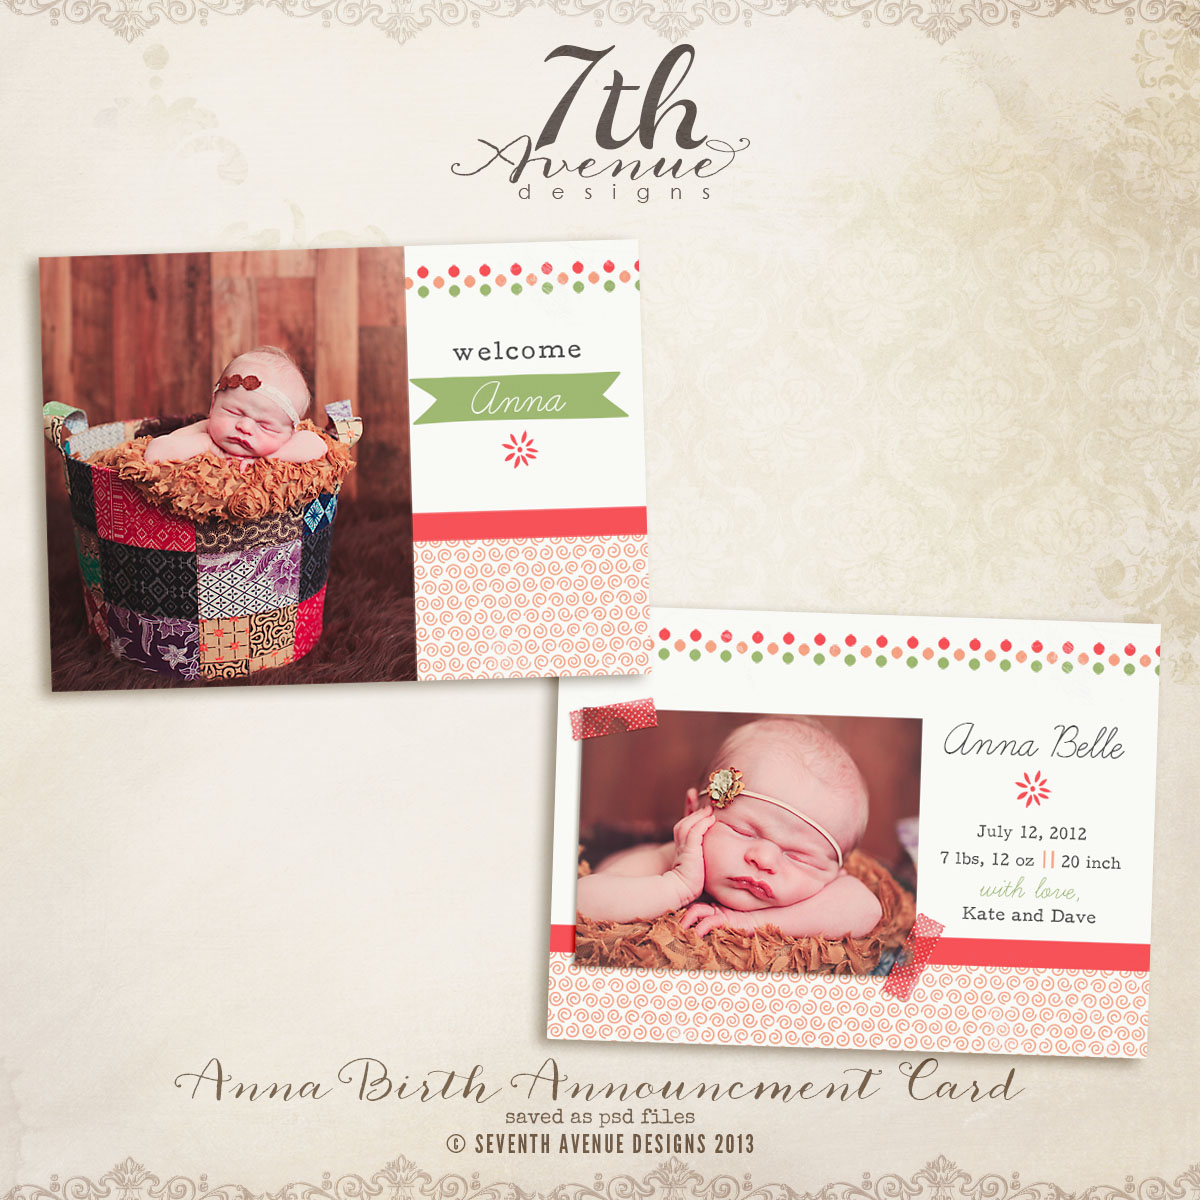 Anna Birth Announcement Card Templates